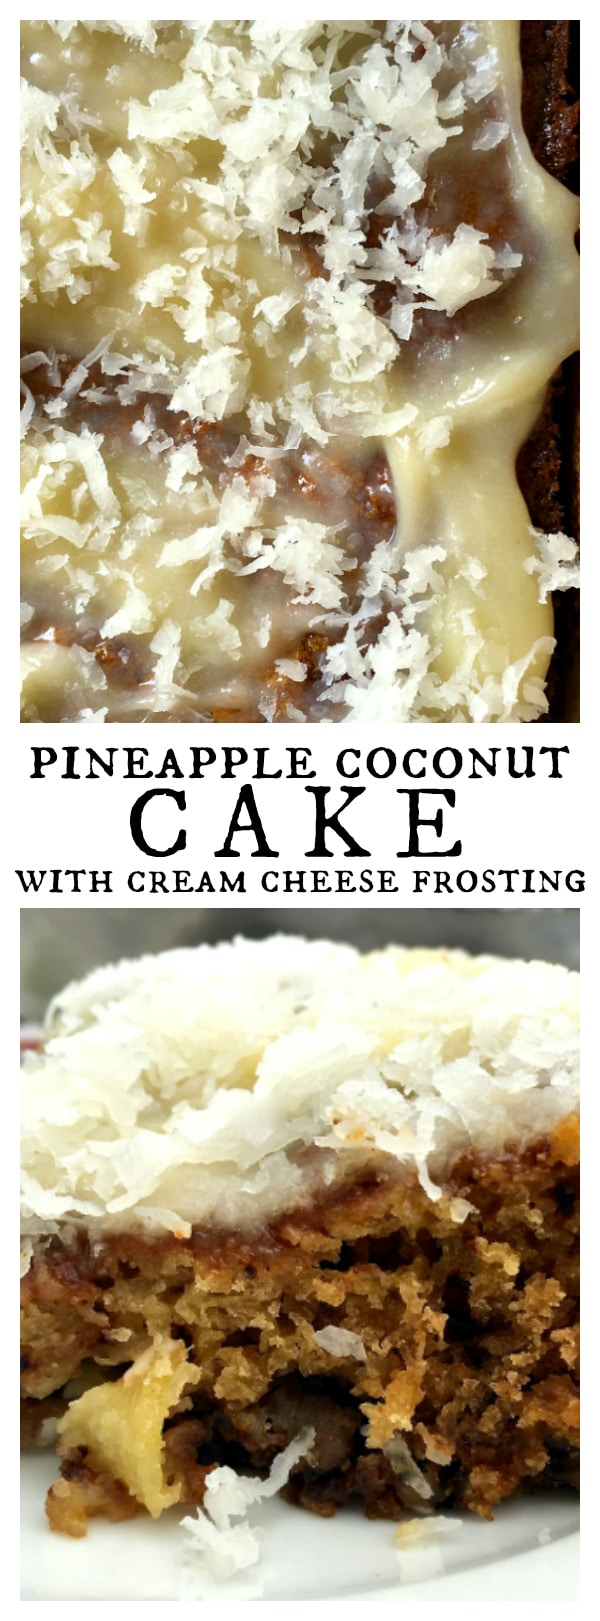 Pineapple Coconut Cake with Cream Cheese Frosting